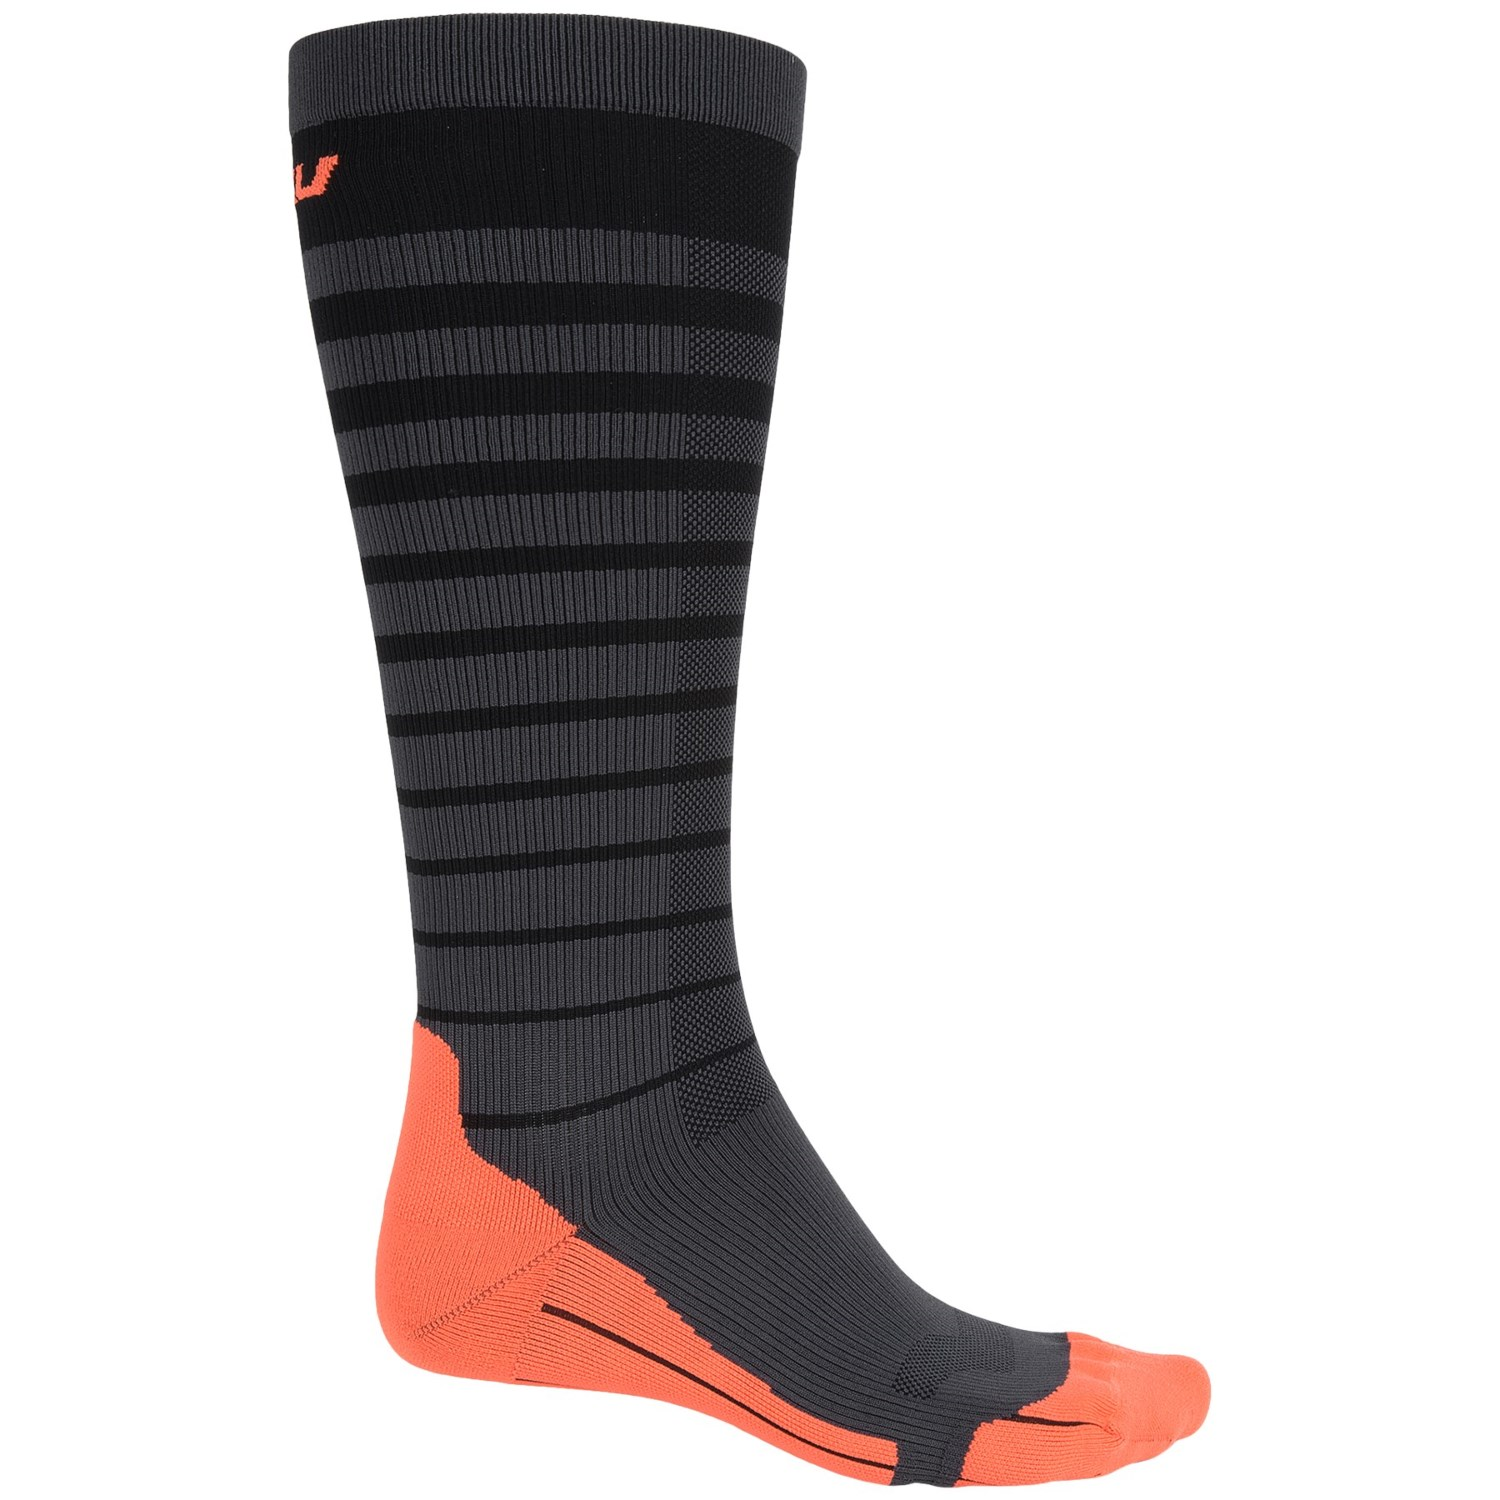 Zip up compression socks for men